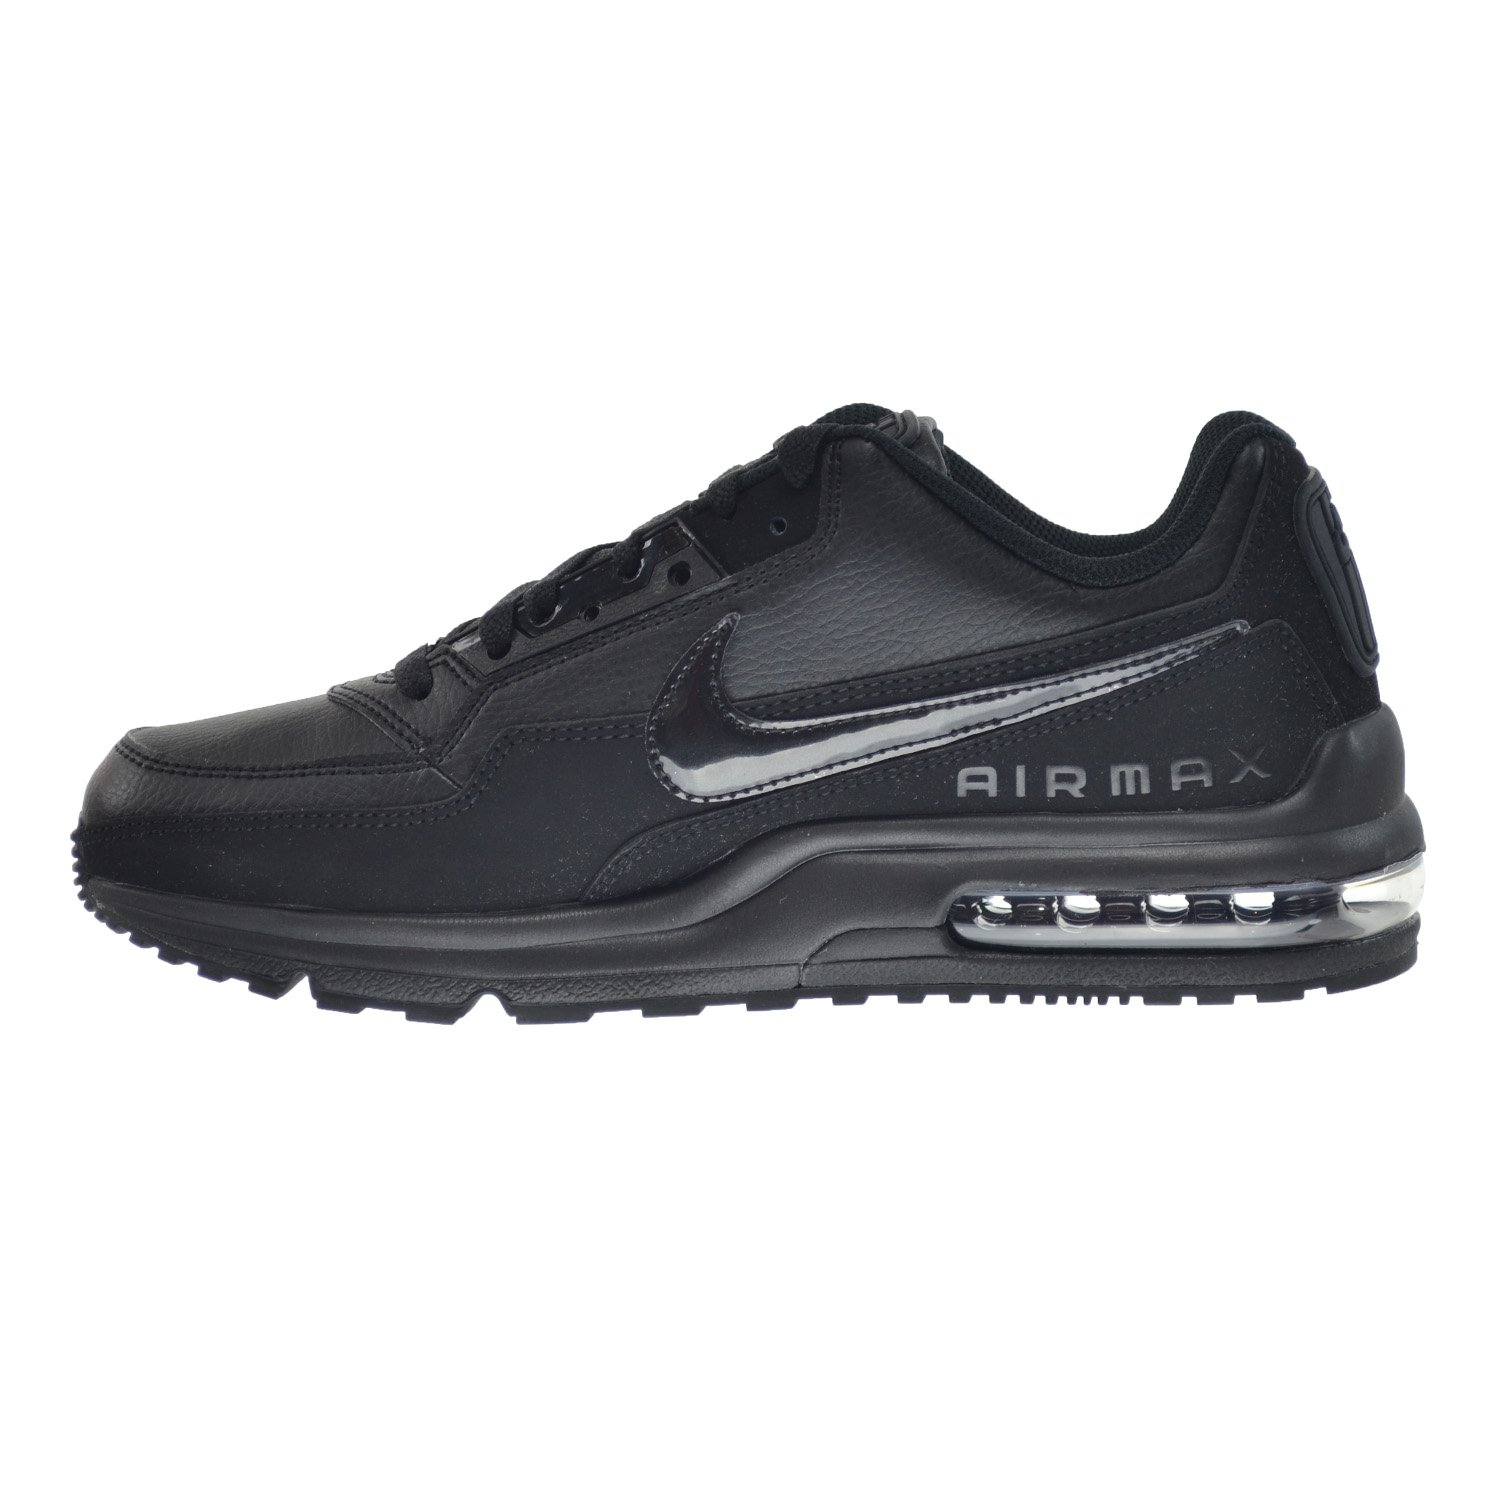 Nike Air Max Ltd Pattini Correnti Degli Uomini 32hUjYP